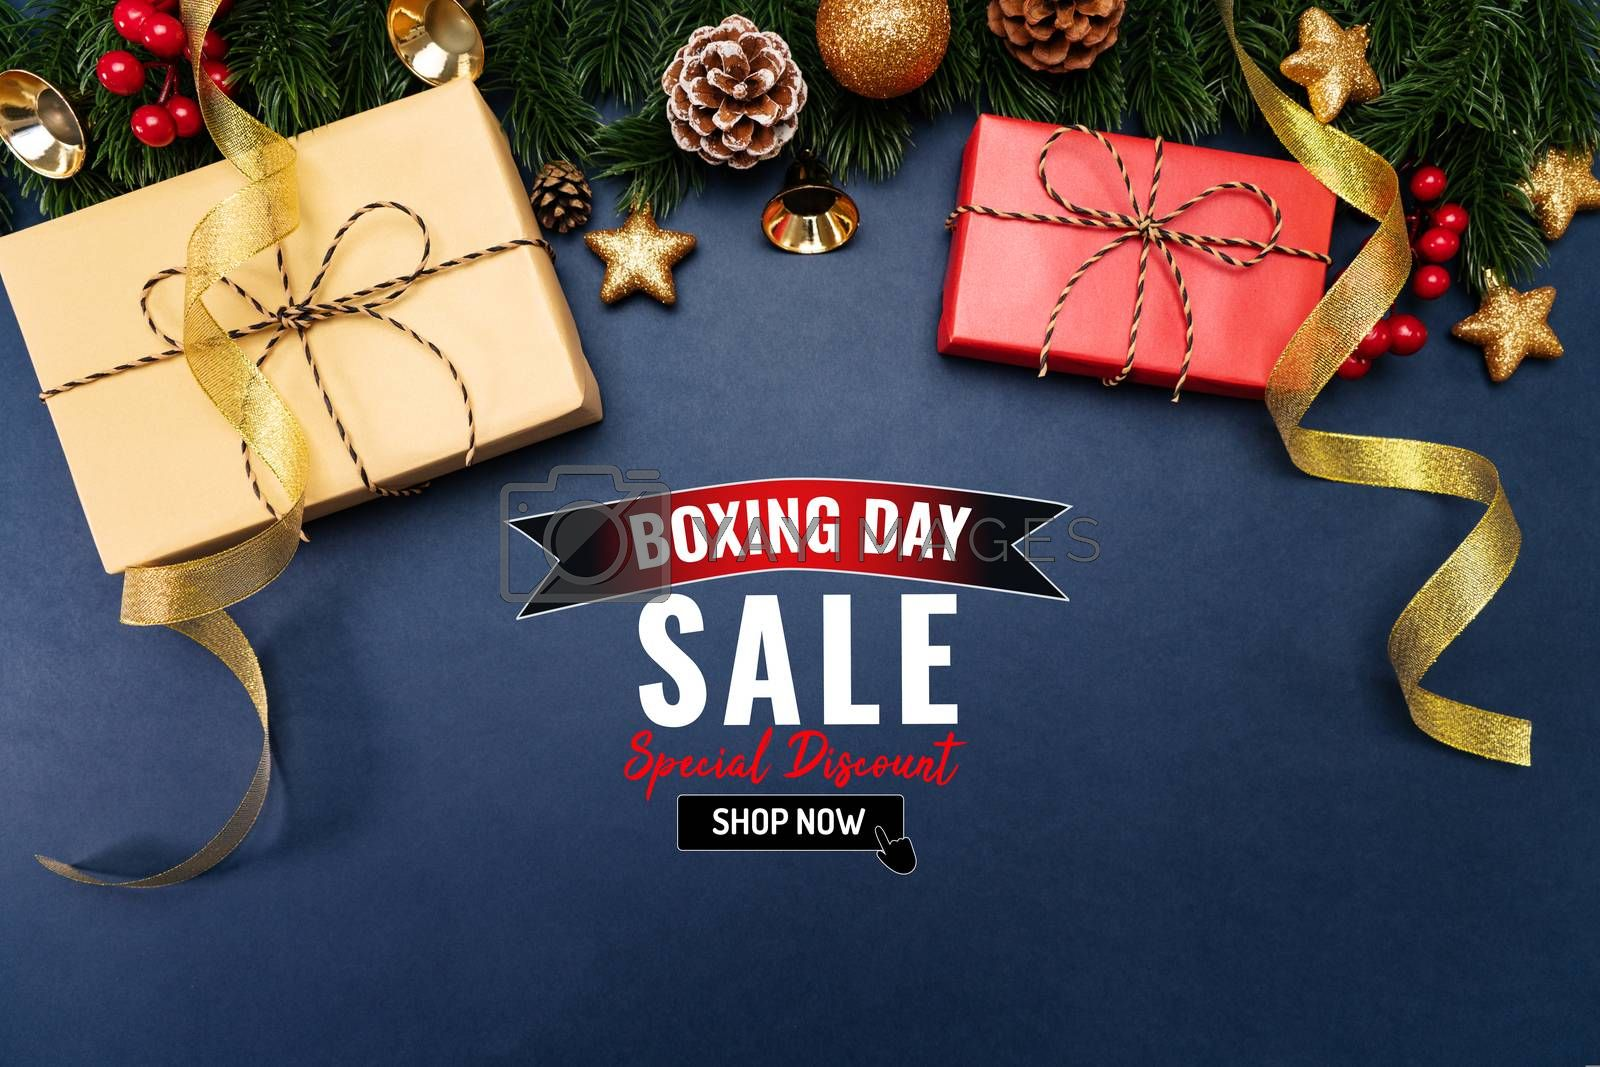 Boxing day sale with Christmas present and xmas decoration on blue background